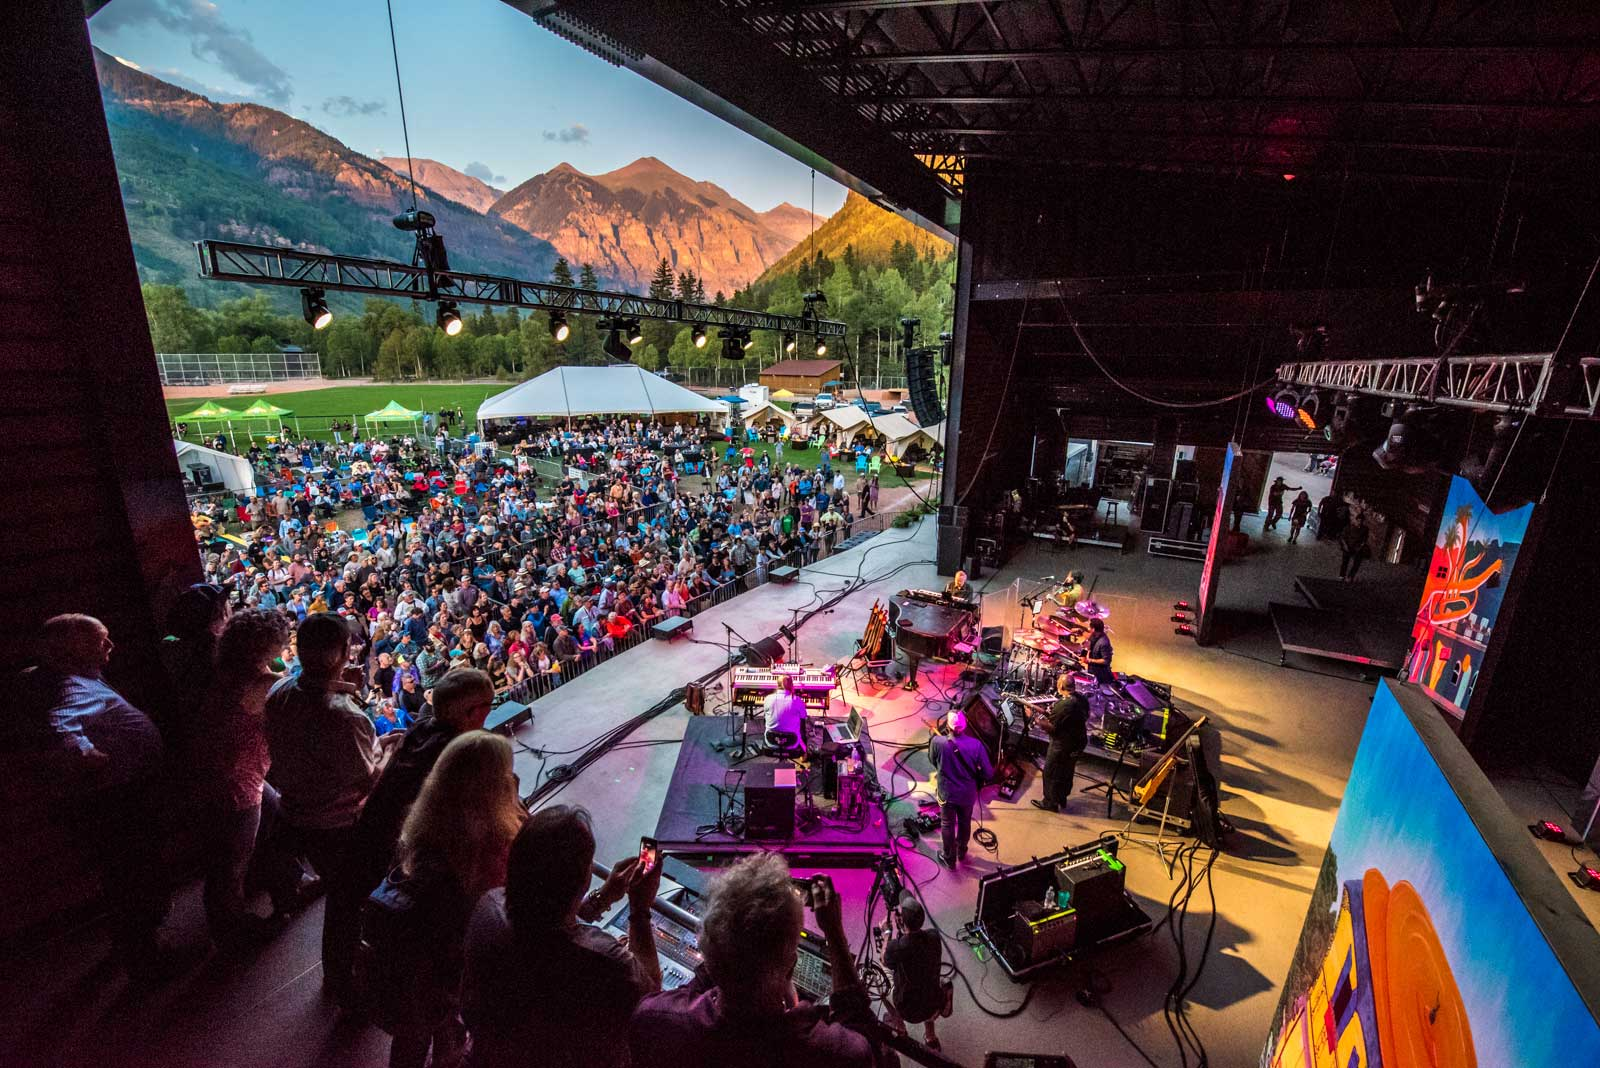 Sky Deck - Watch your favorite performance from a on-stage viewing platform of the Main Stage offering the most intimate festival experience possible. (pictured here from the Telluride Jazz Festival)